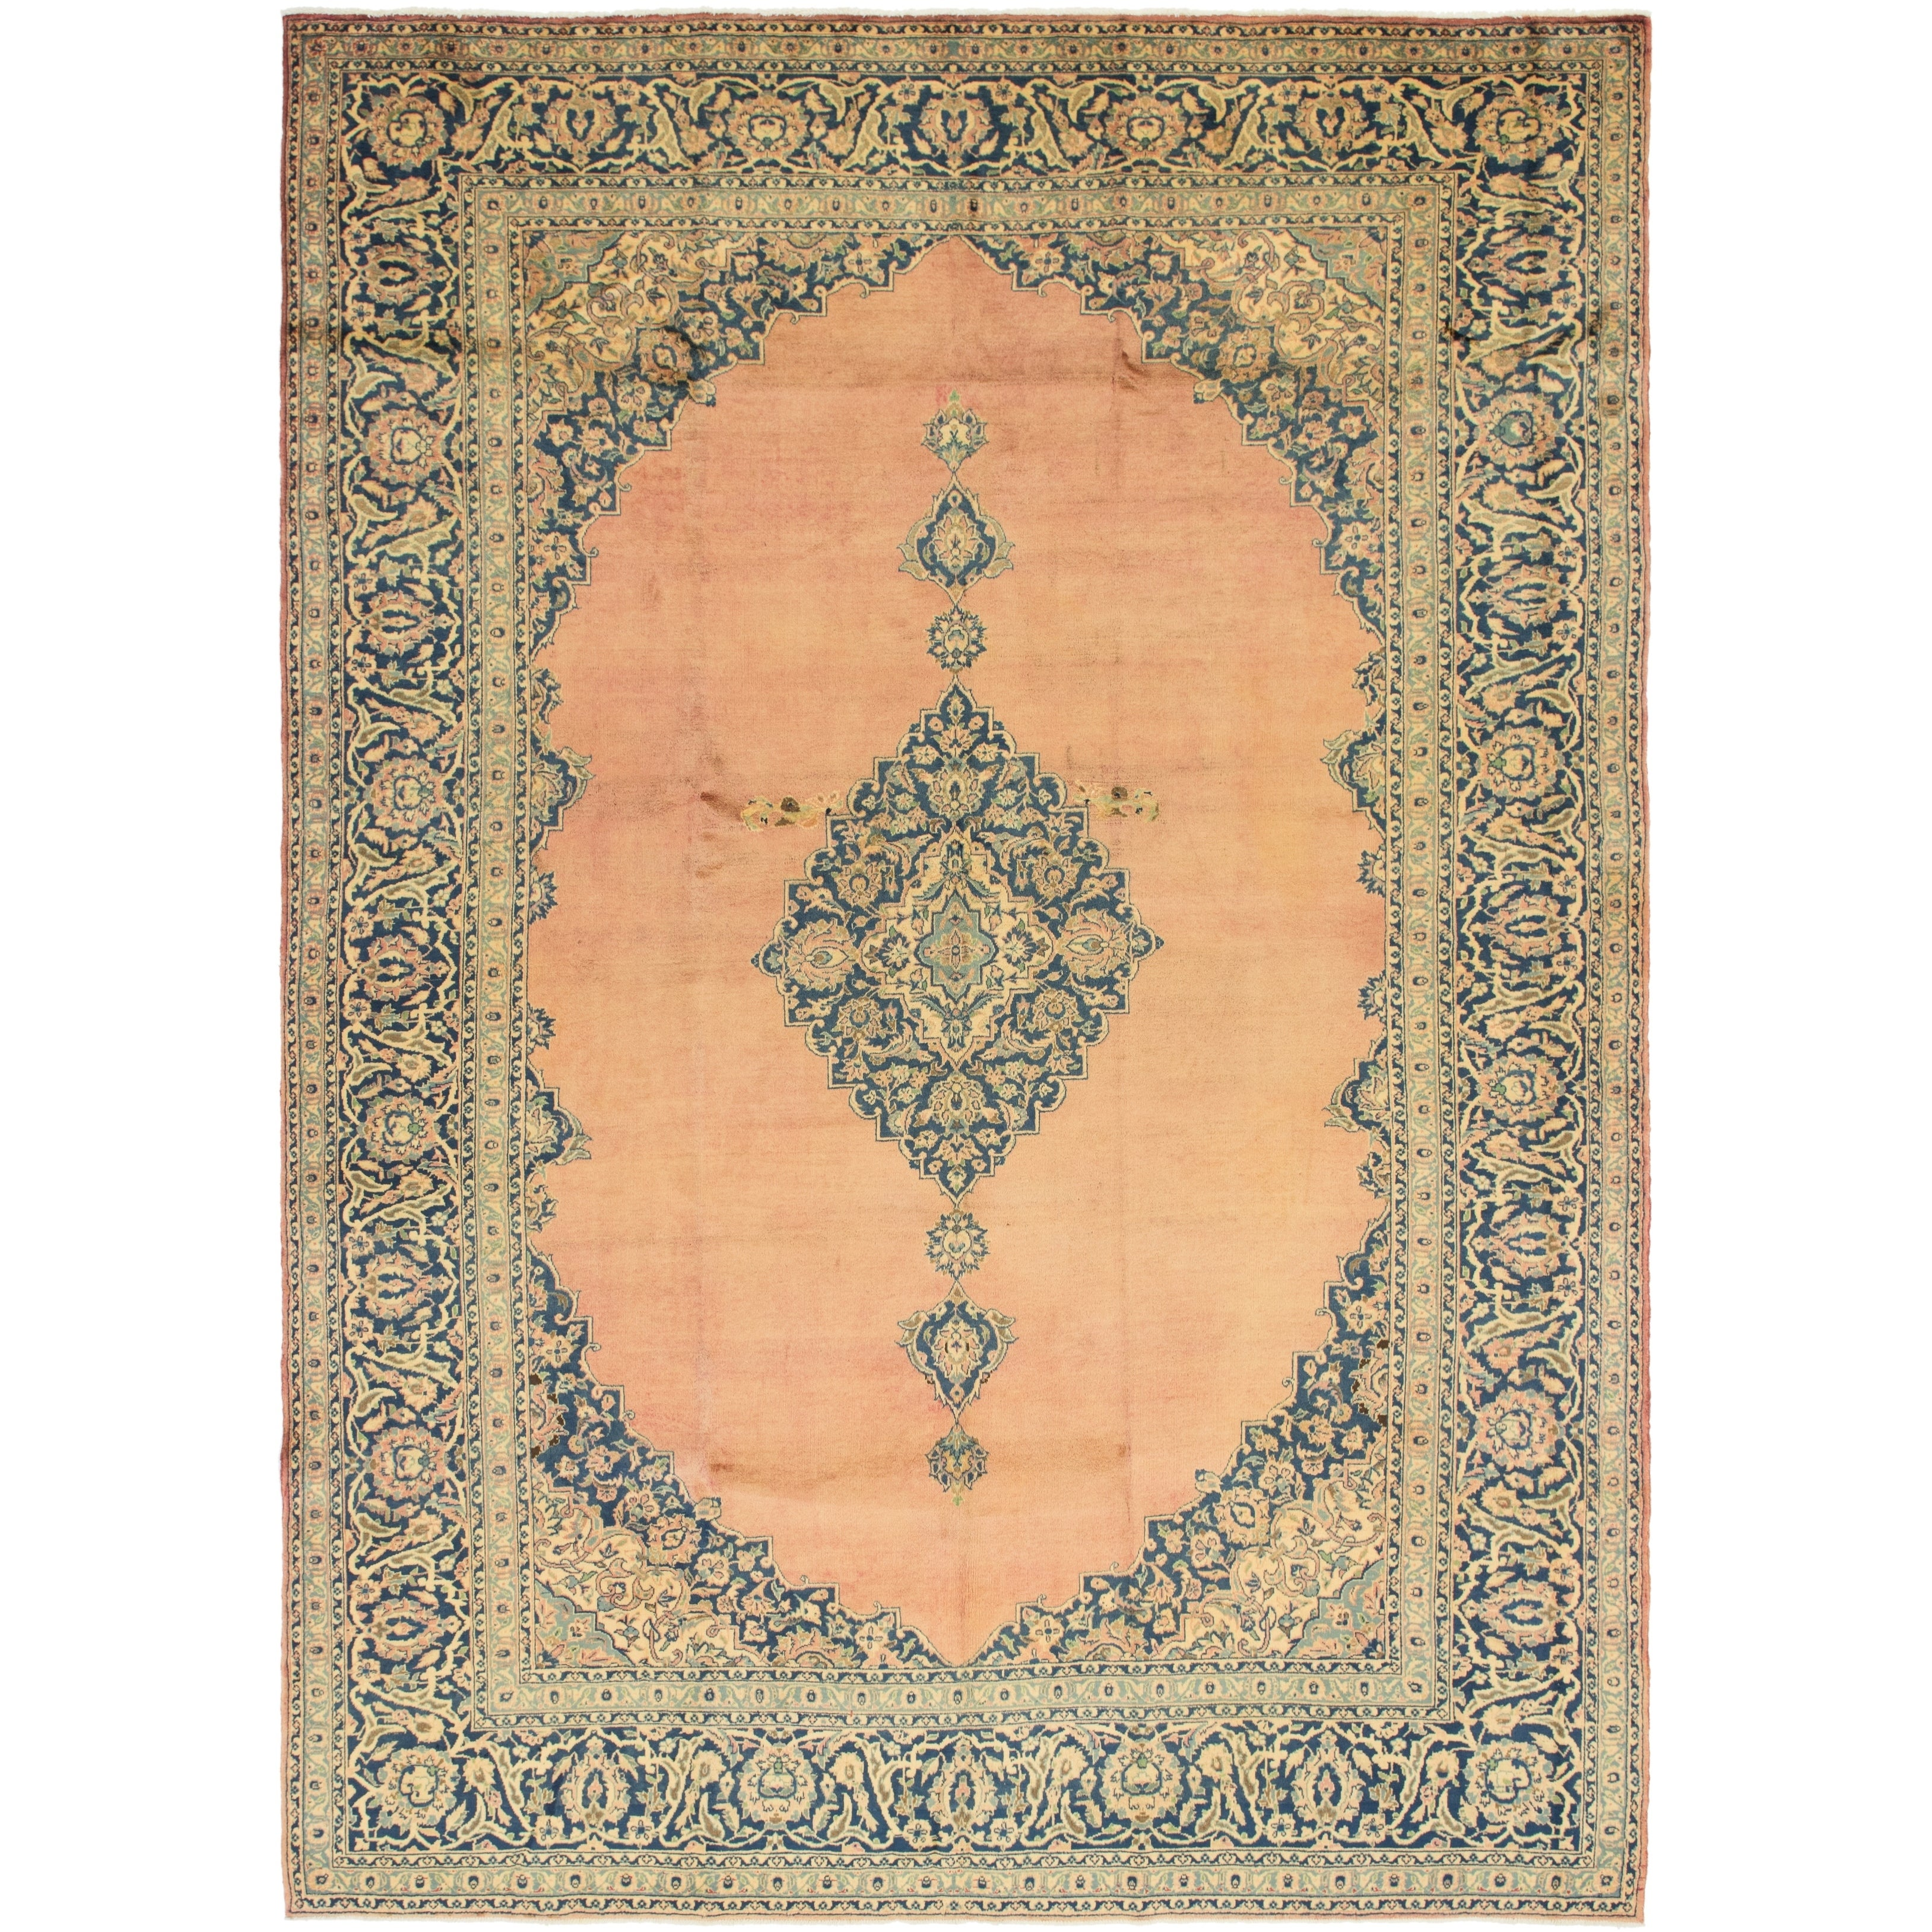 Hand Knotted Kashan Semi Antique Wool Area Rug - 9 5 x 13 2 (peach - 9 5 x 13 2)